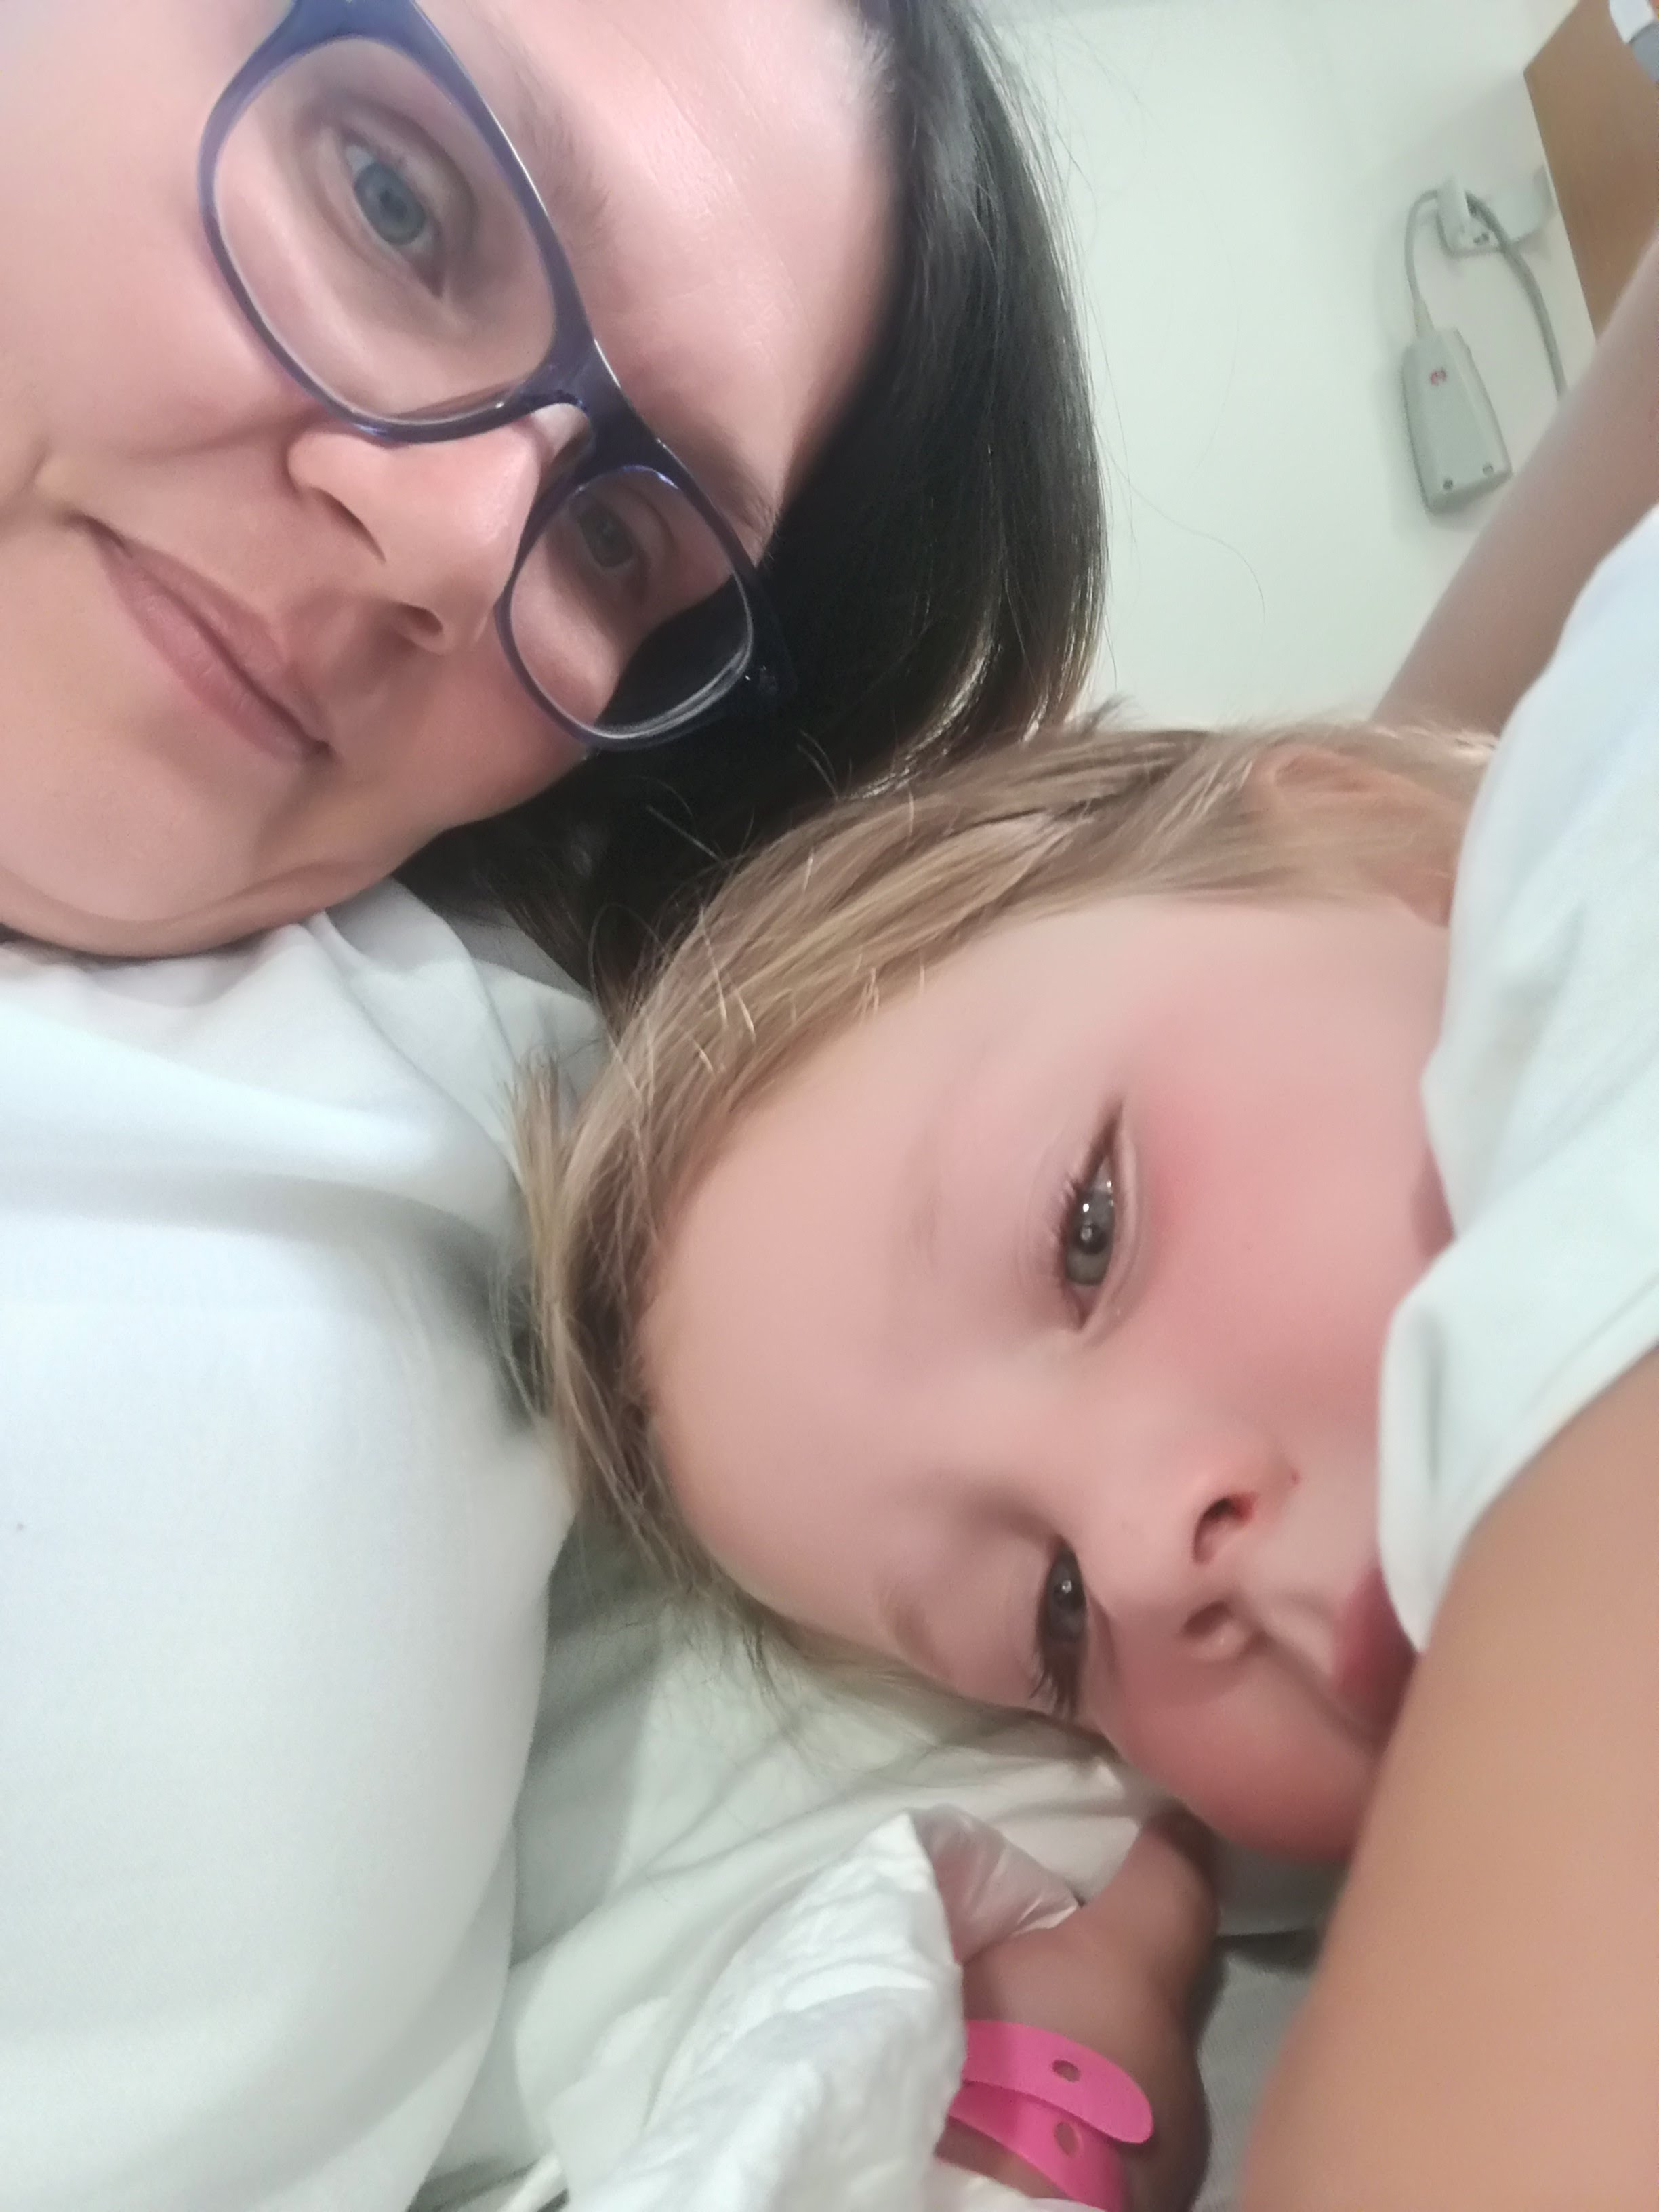 Having your kids tonsils out|HarassedMom